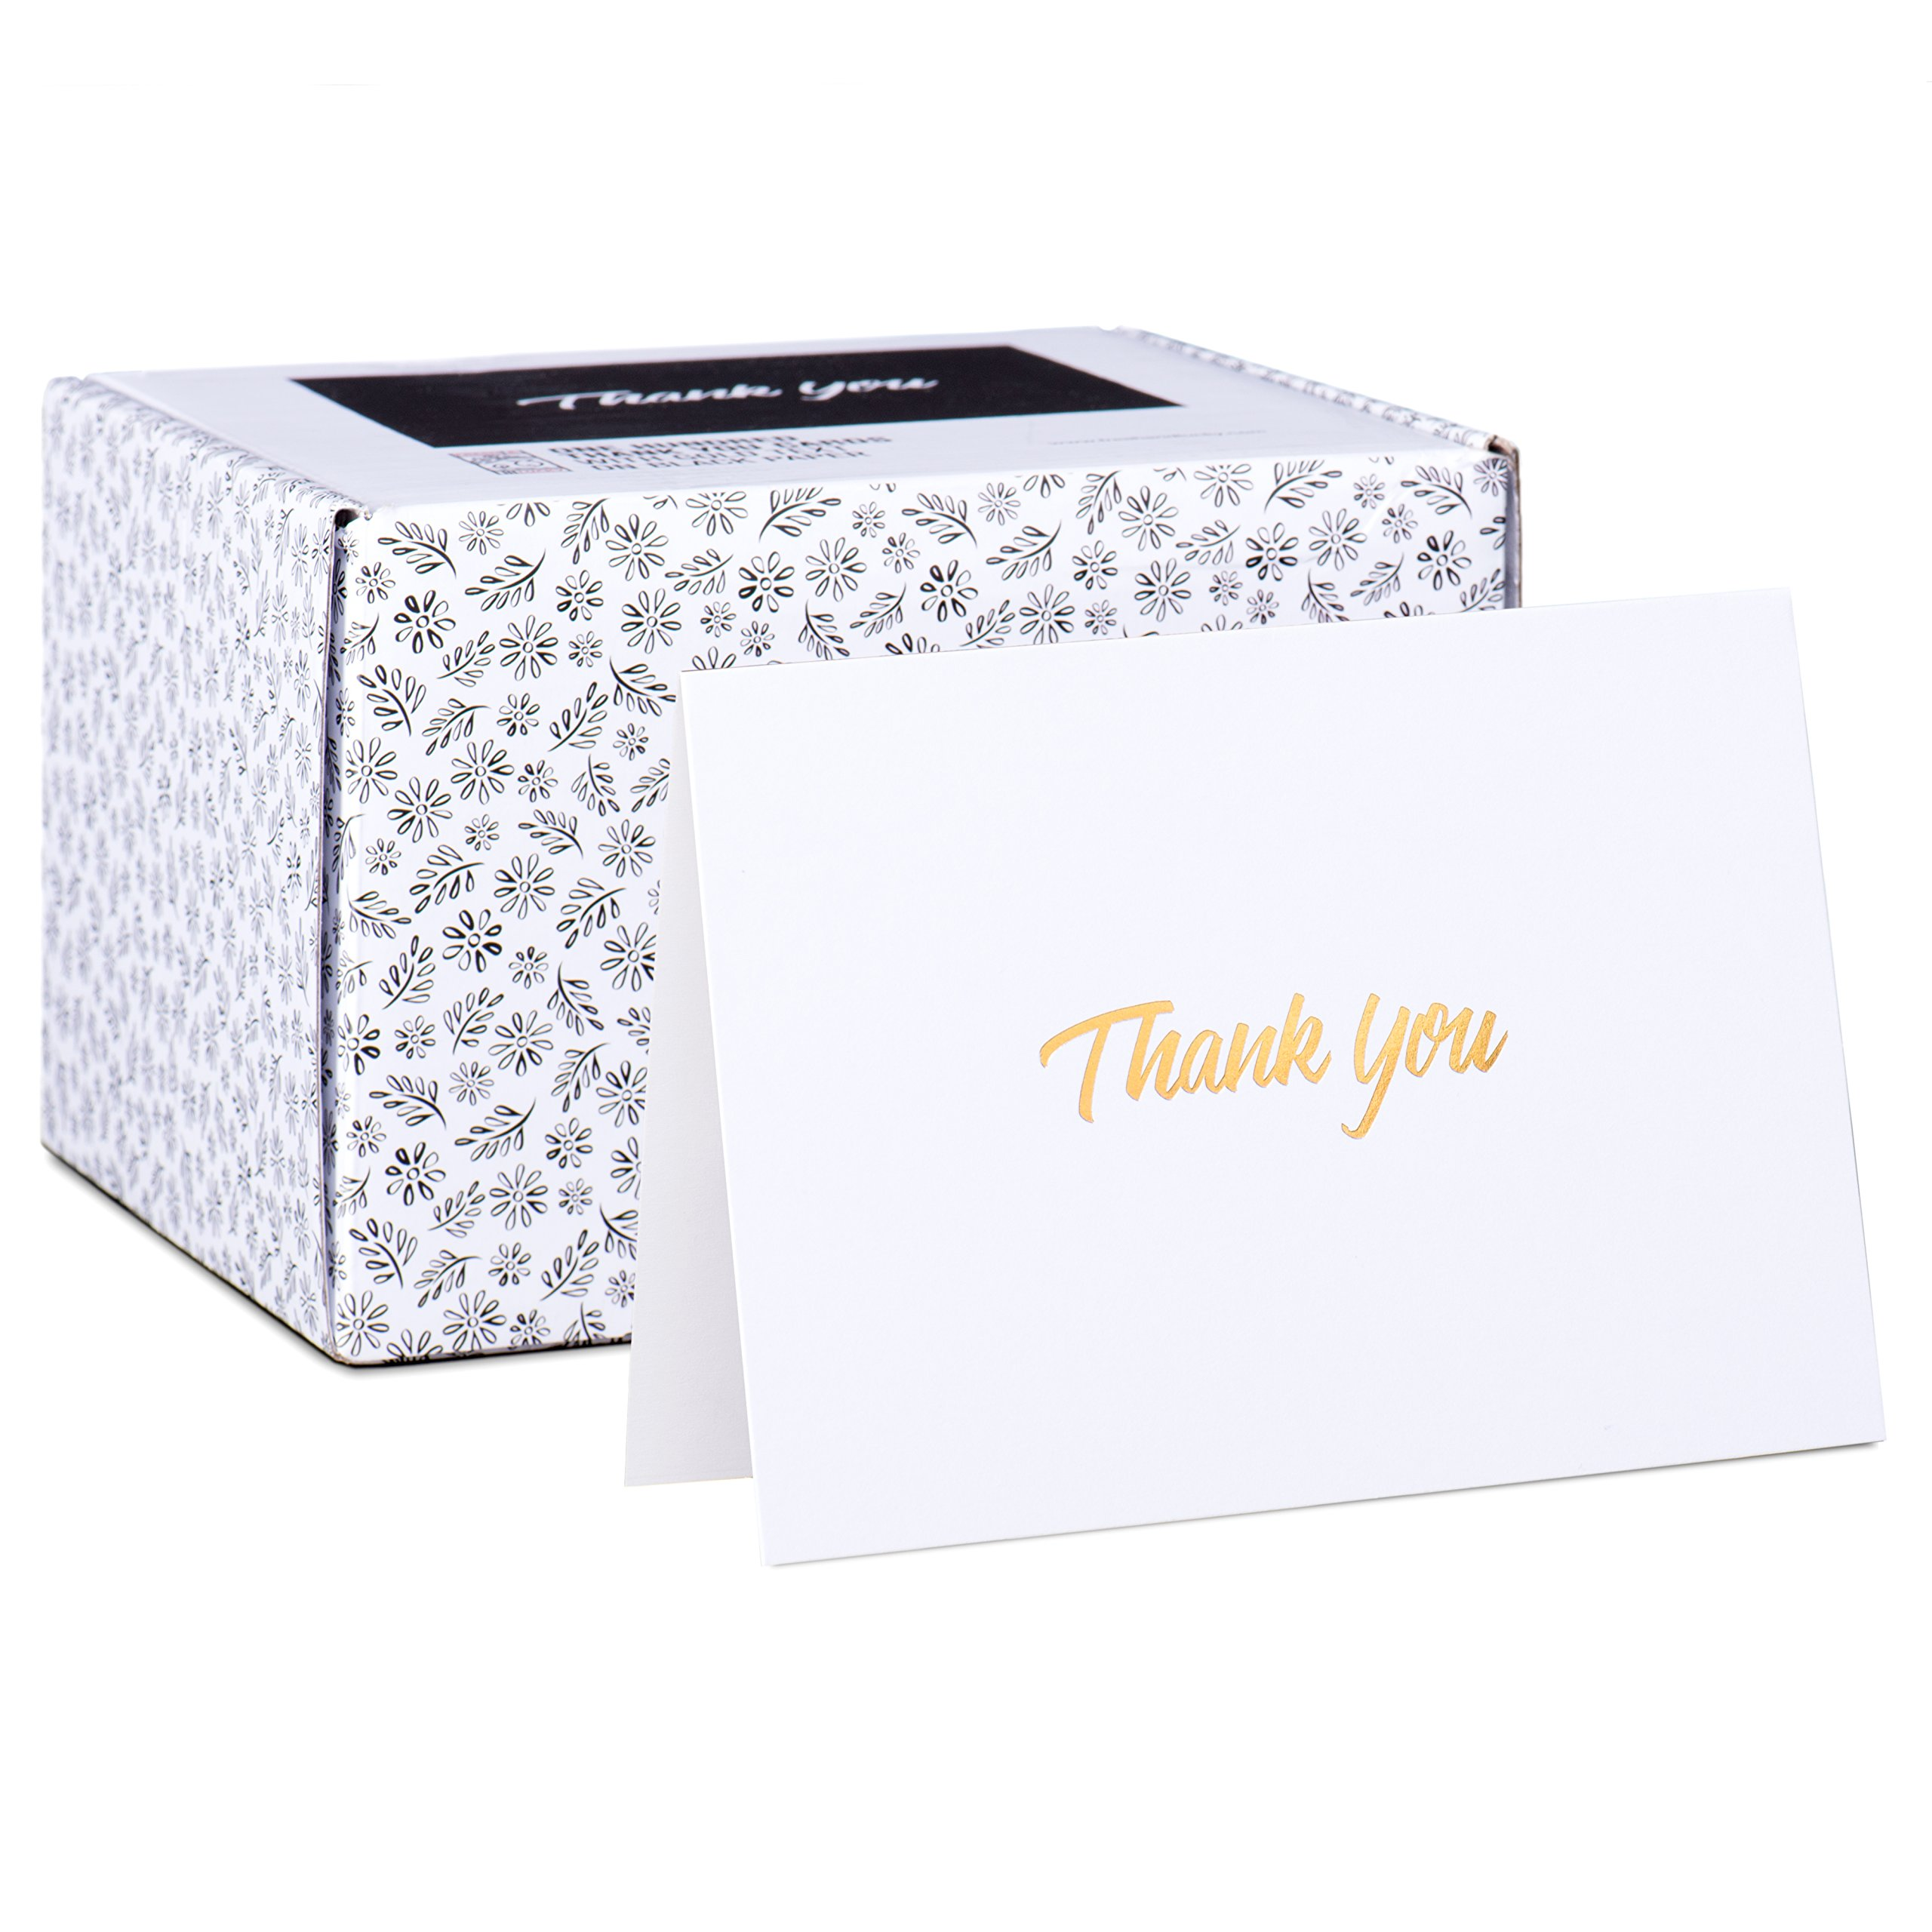 100 Thank You Cards - White Bulk Note Cards with Gold Foil Embossed Letters - Perfect for Your Wedding, Baby Shower, Business, Graduation, Bridal Shower, Birthday, Engagement